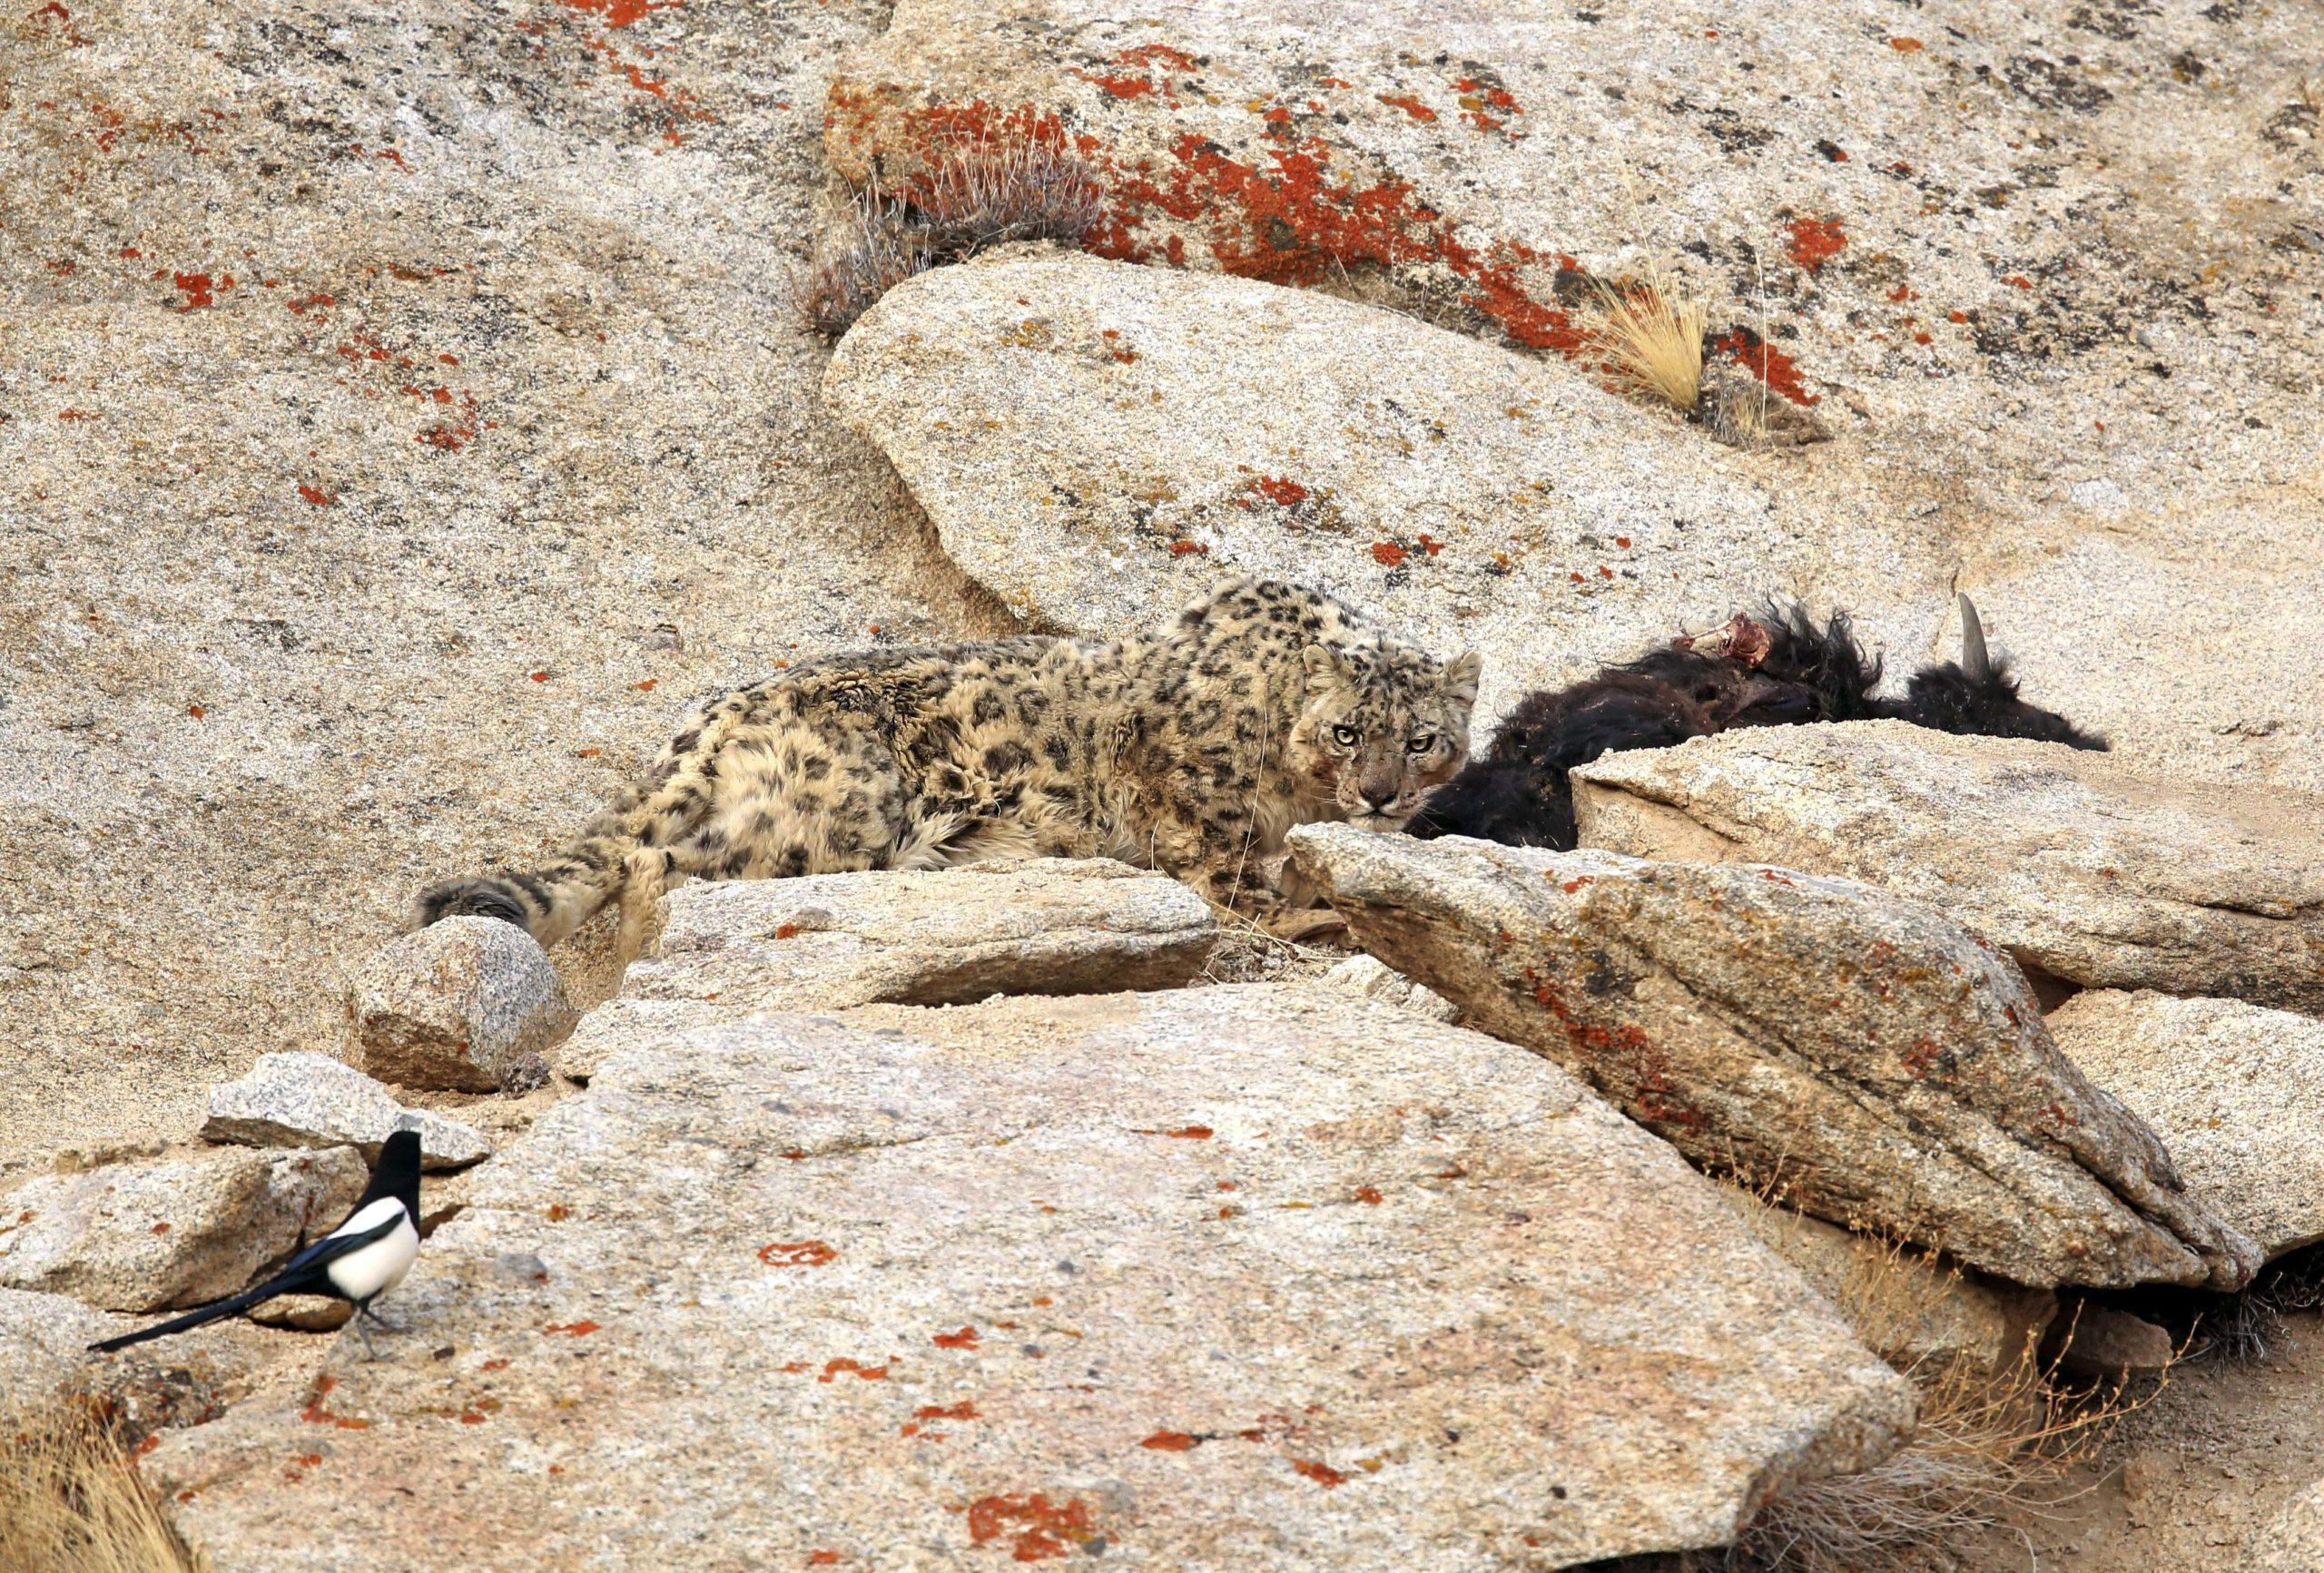 snow leopard stalking something along the rocks seen on an Indian Subcontinent safari